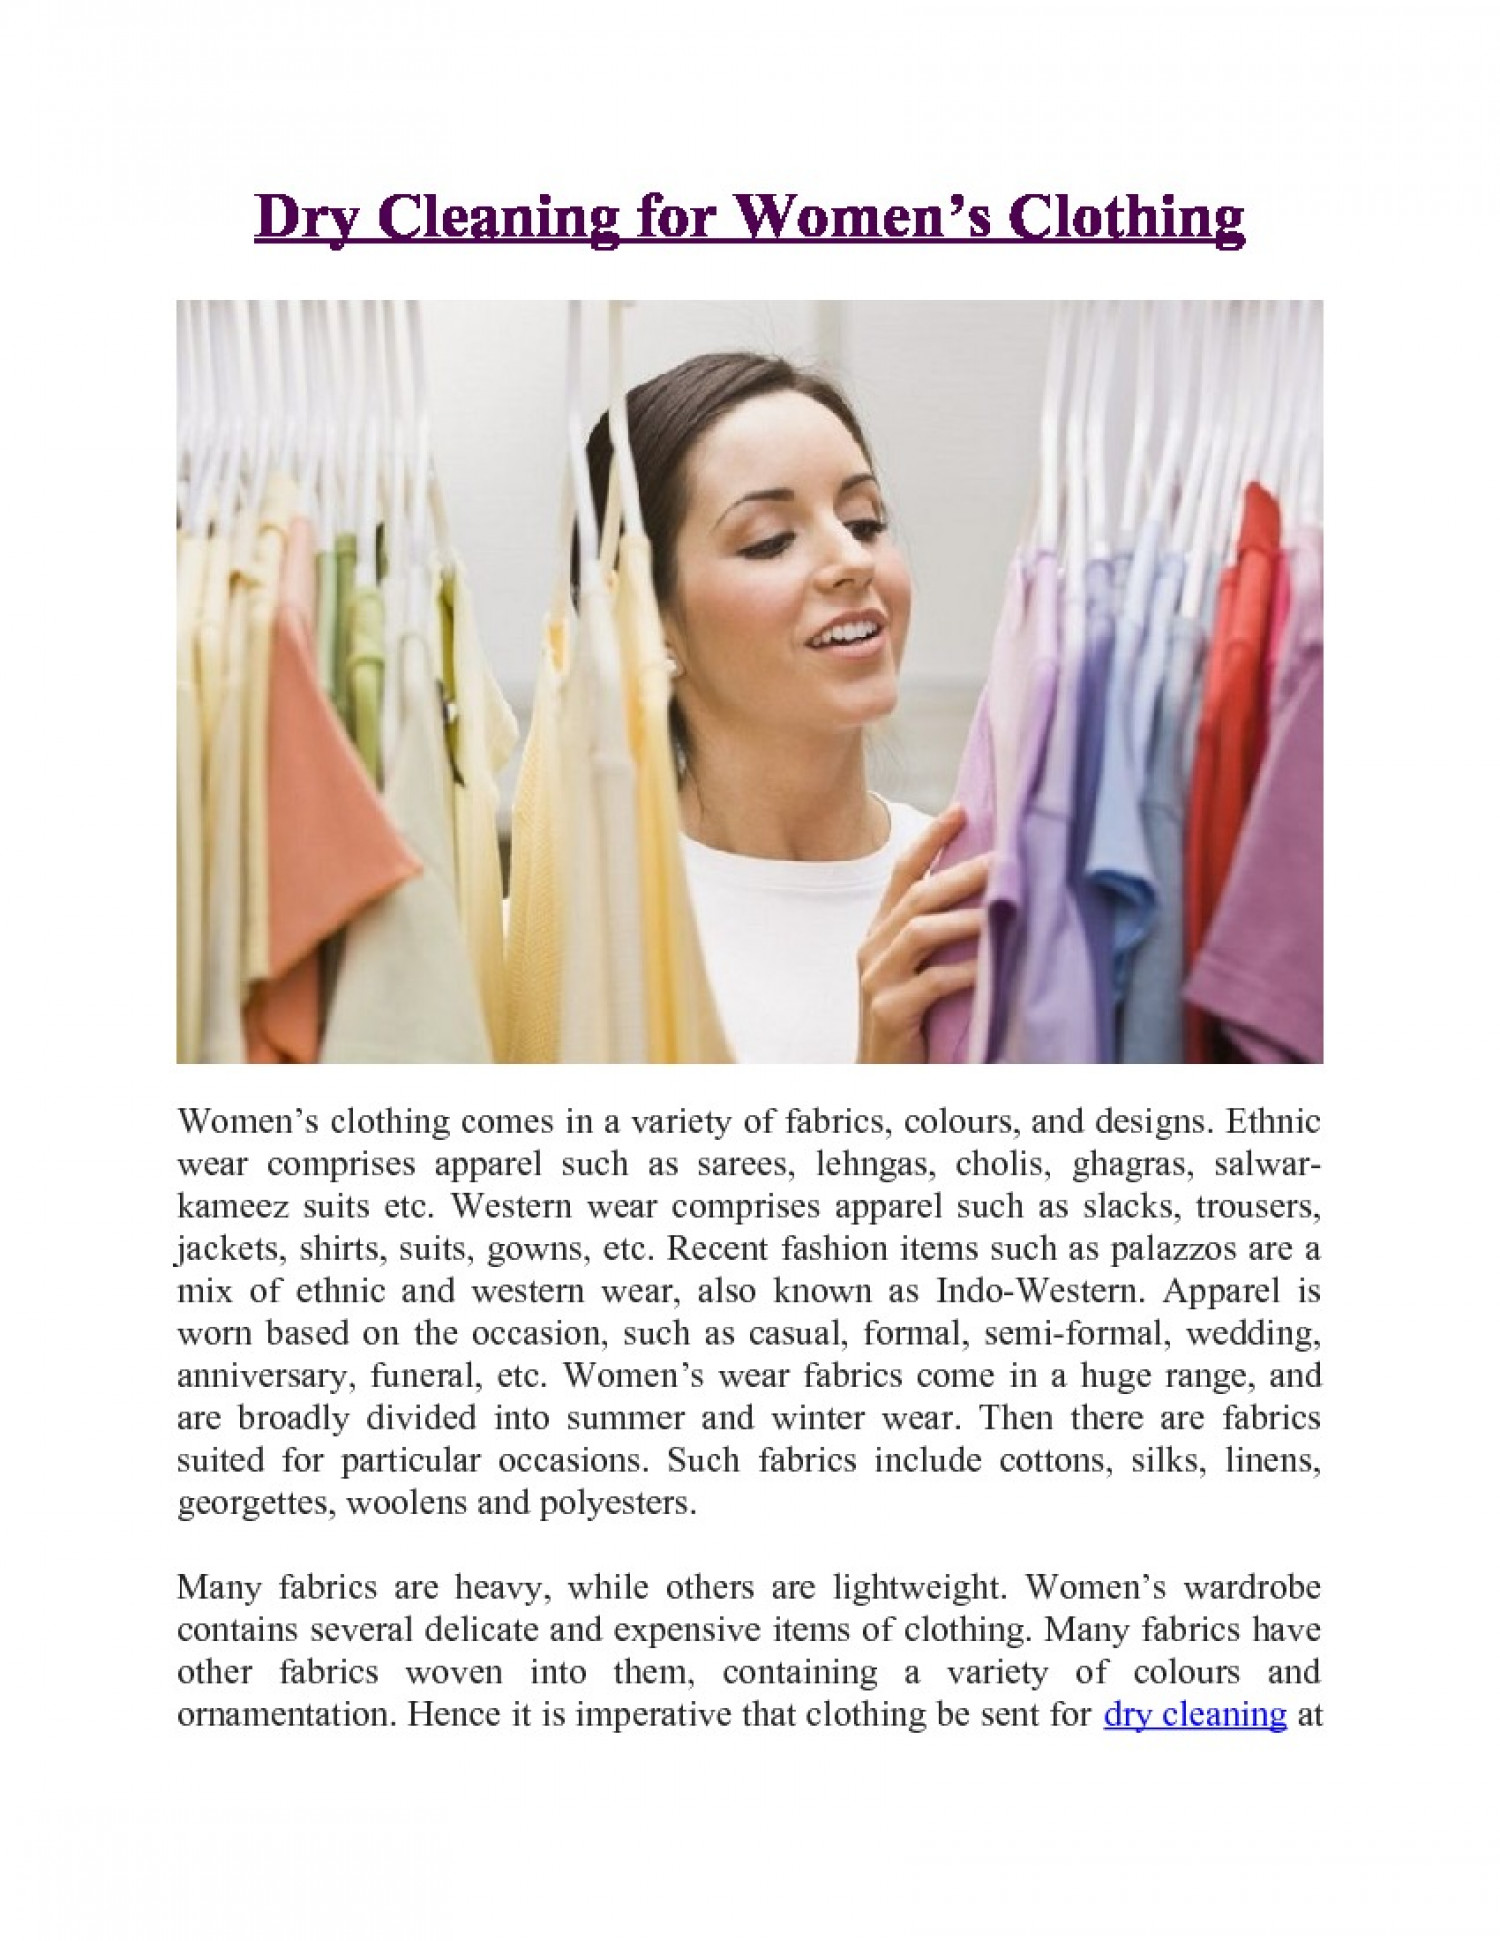 Dry Cleaning for Women's Clothing Infographic